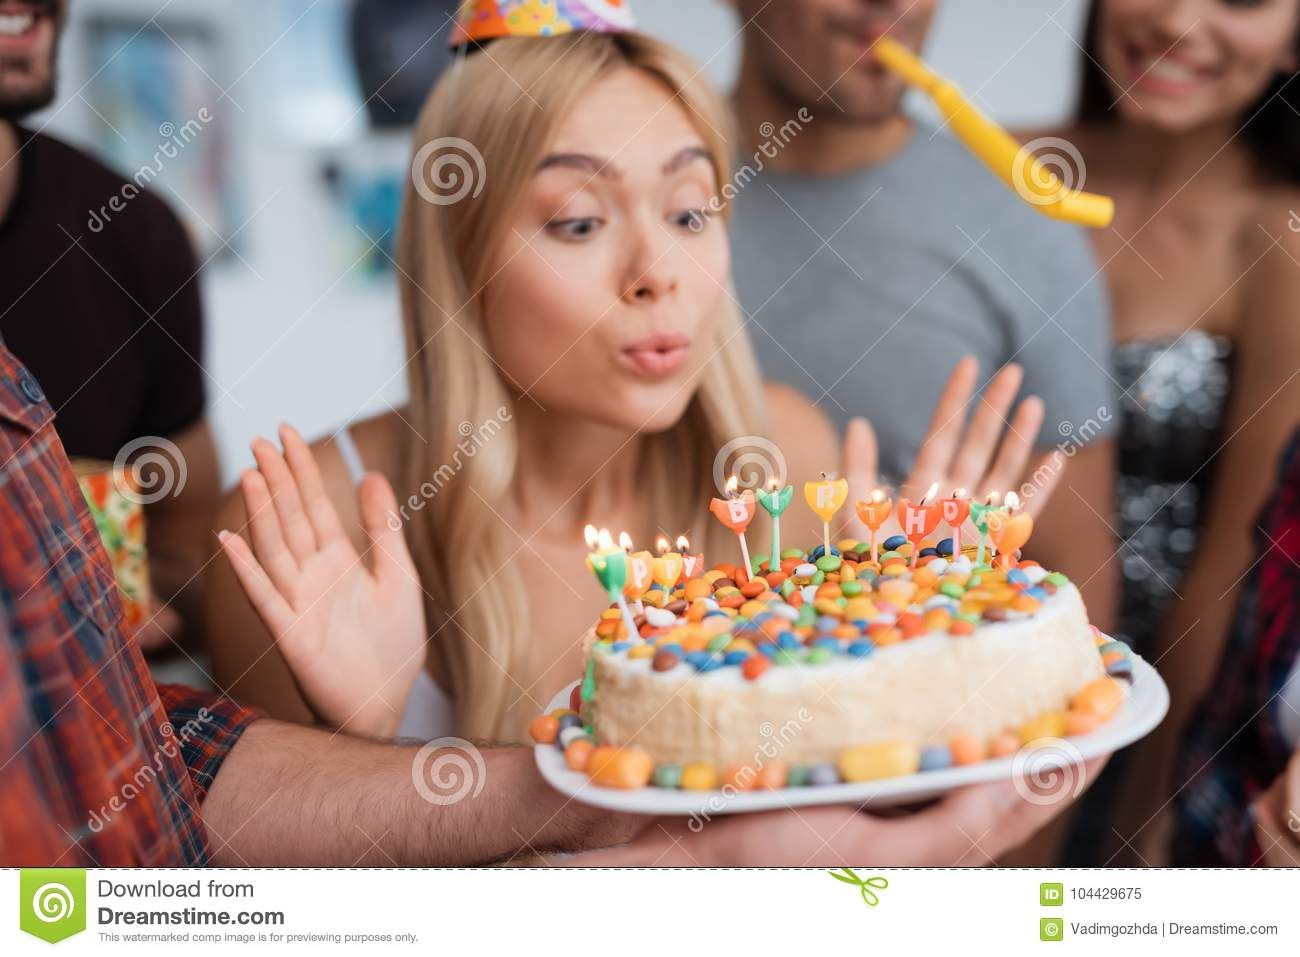 Astonishing The Girl Blows Out The Candles On The Birthday Cake A Girl Blows Personalised Birthday Cards Vishlily Jamesorg